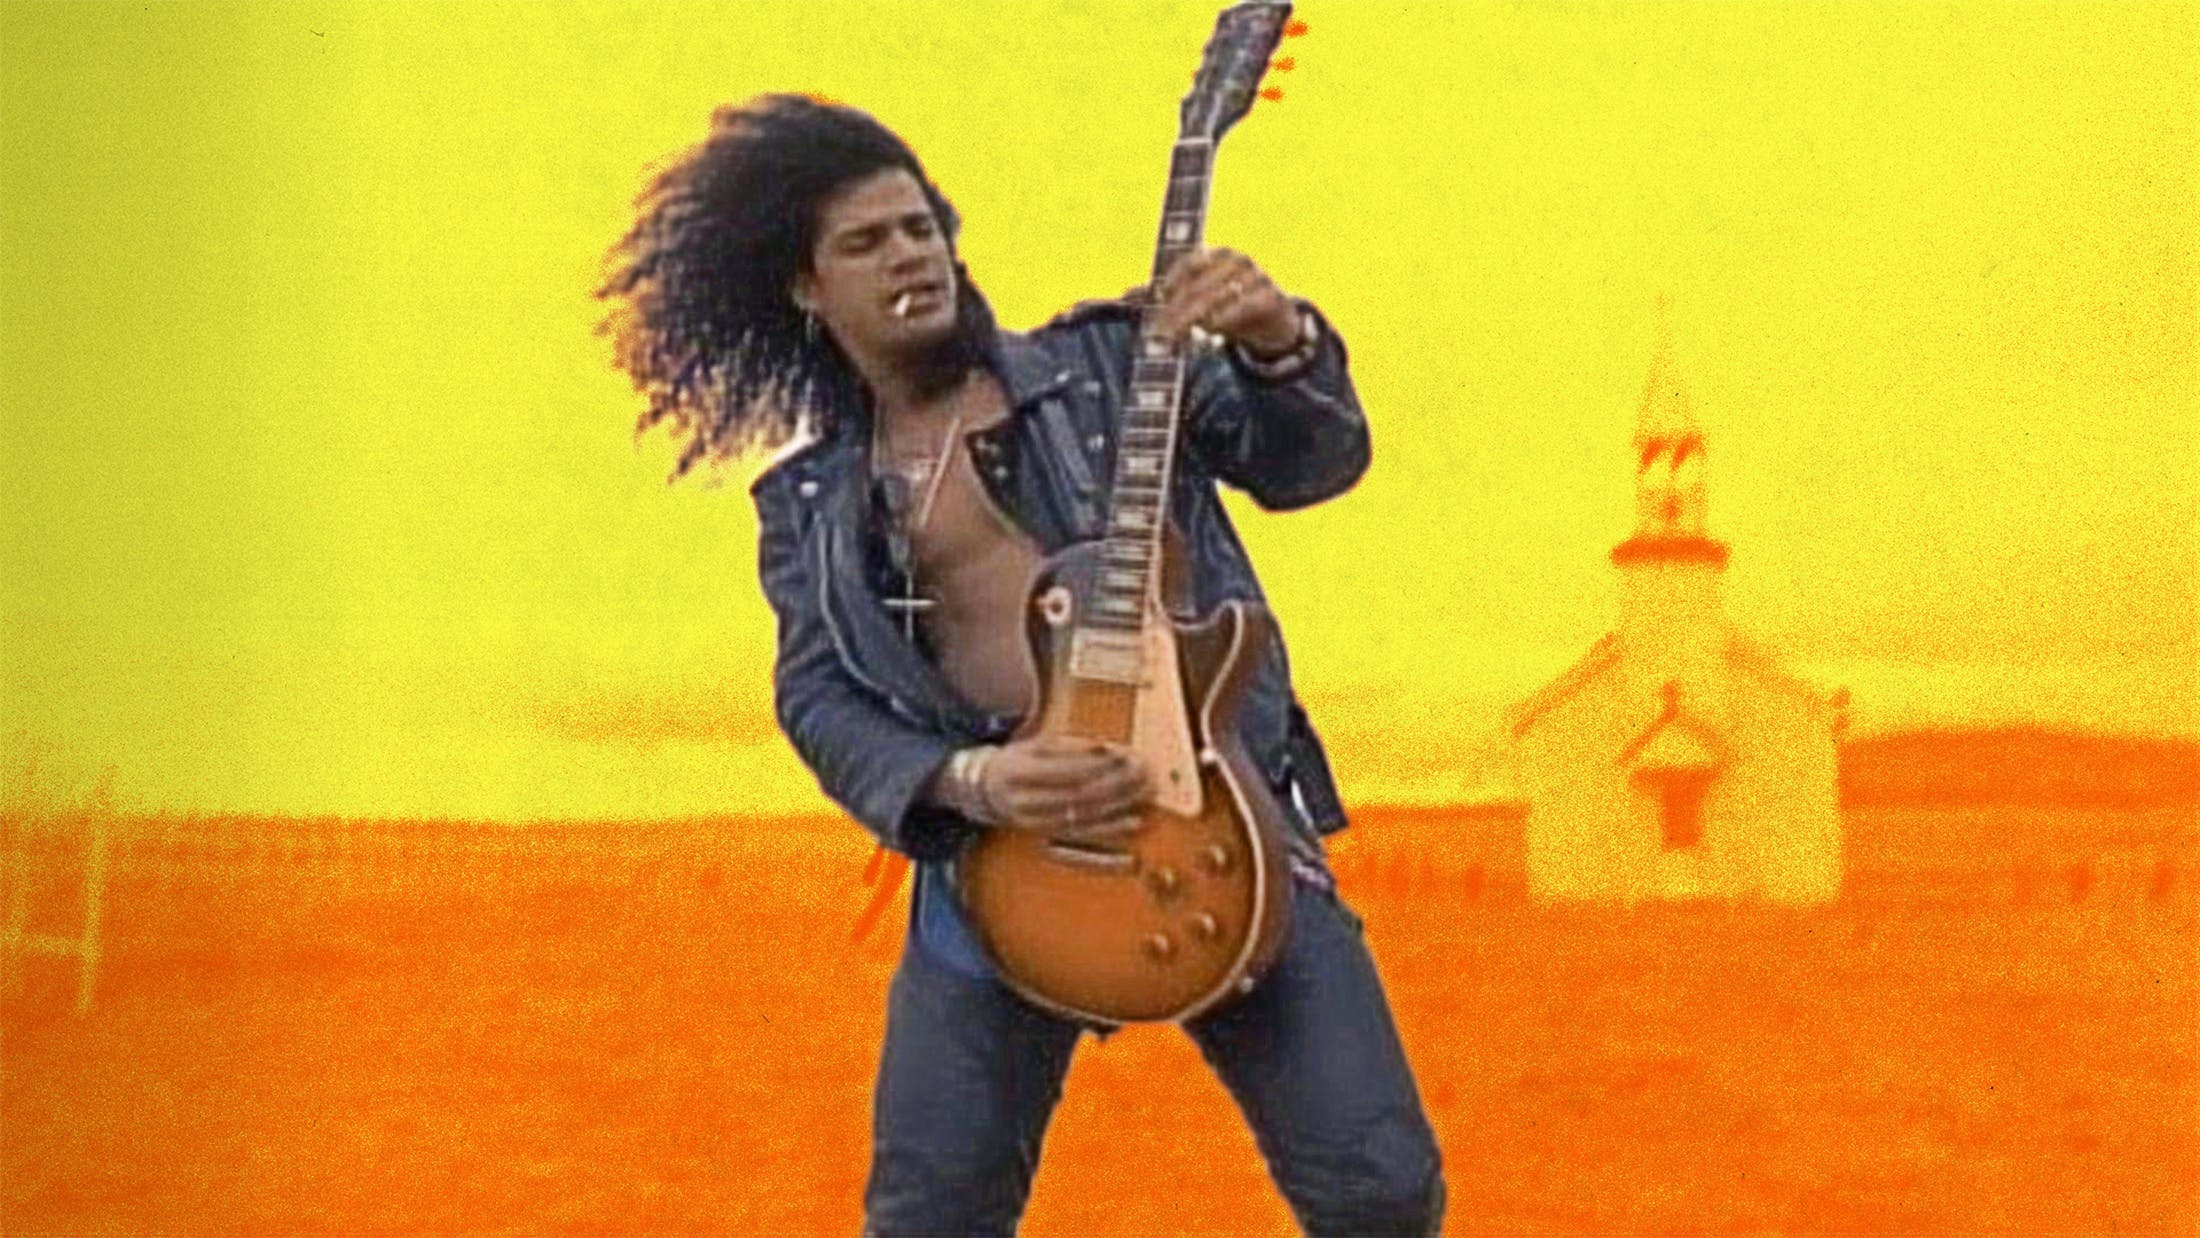 A Probably Far Too Forensic Analysis Of Guns N' Roses' November Rain